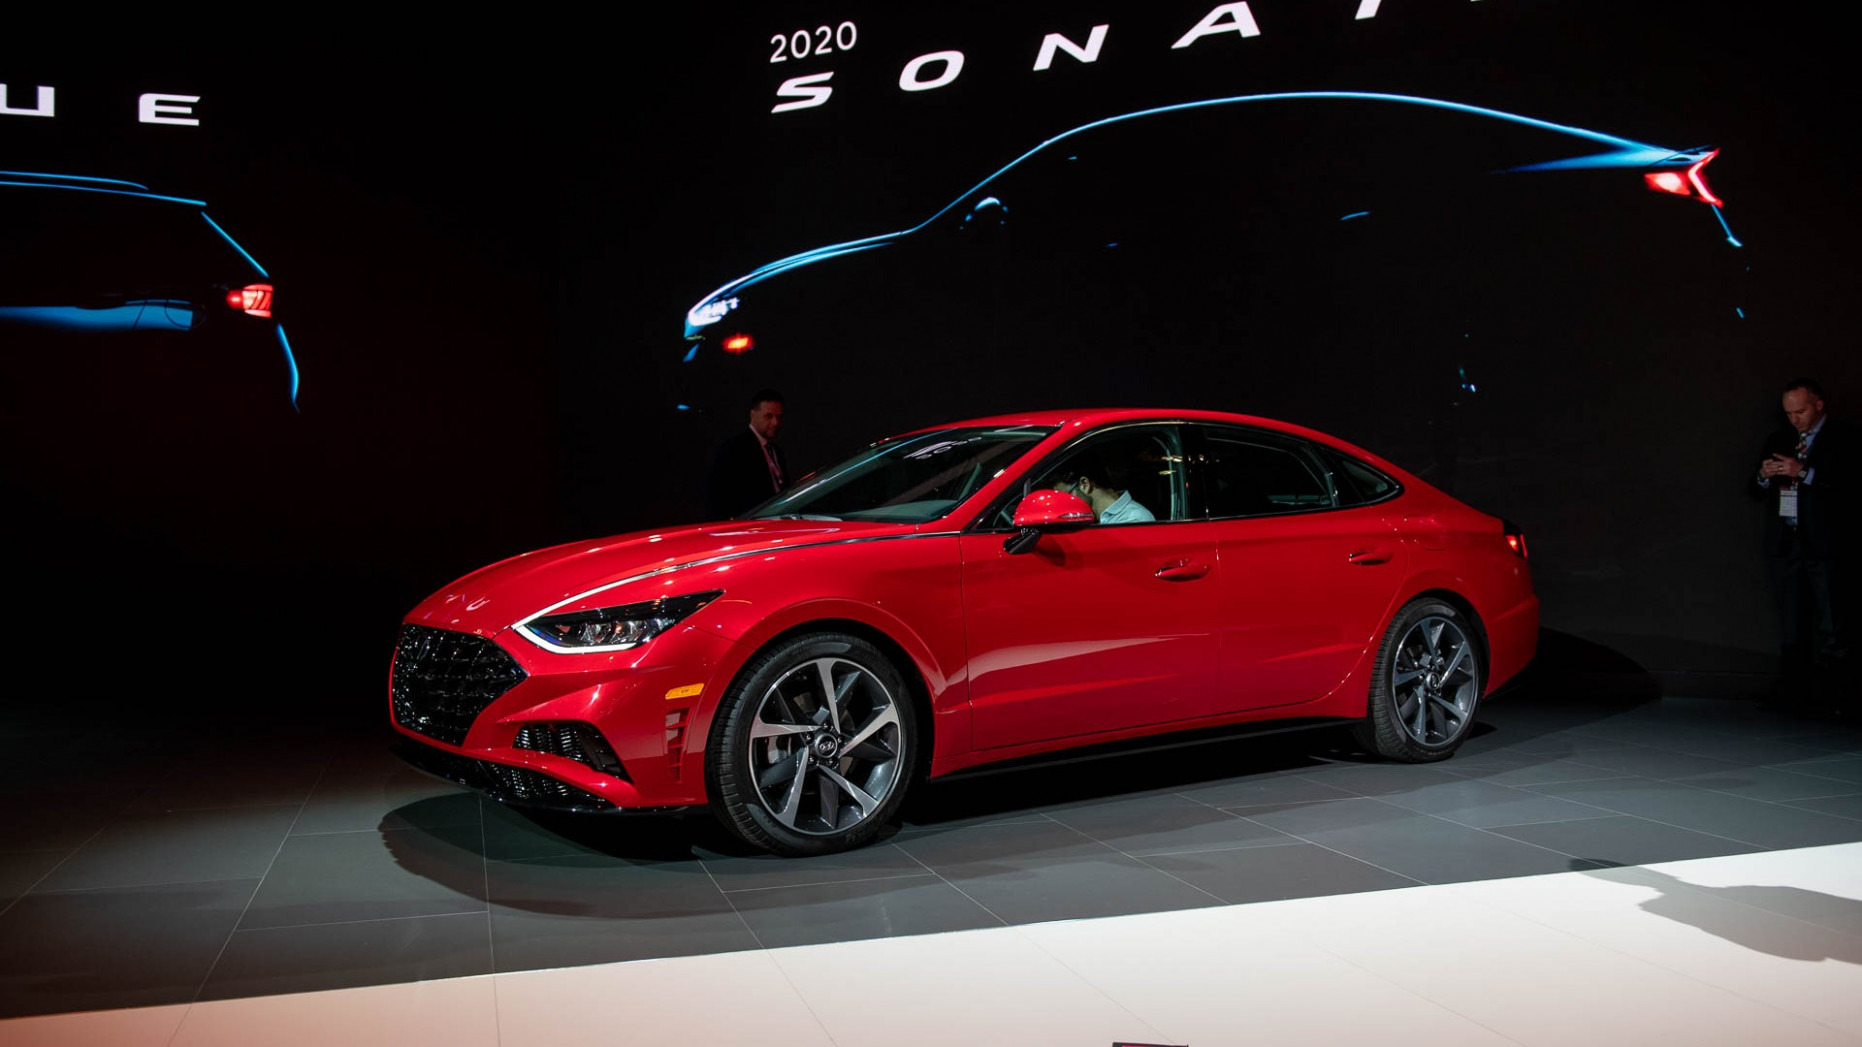 Concept When Is The 2022 Hyundai Sonata Coming Out